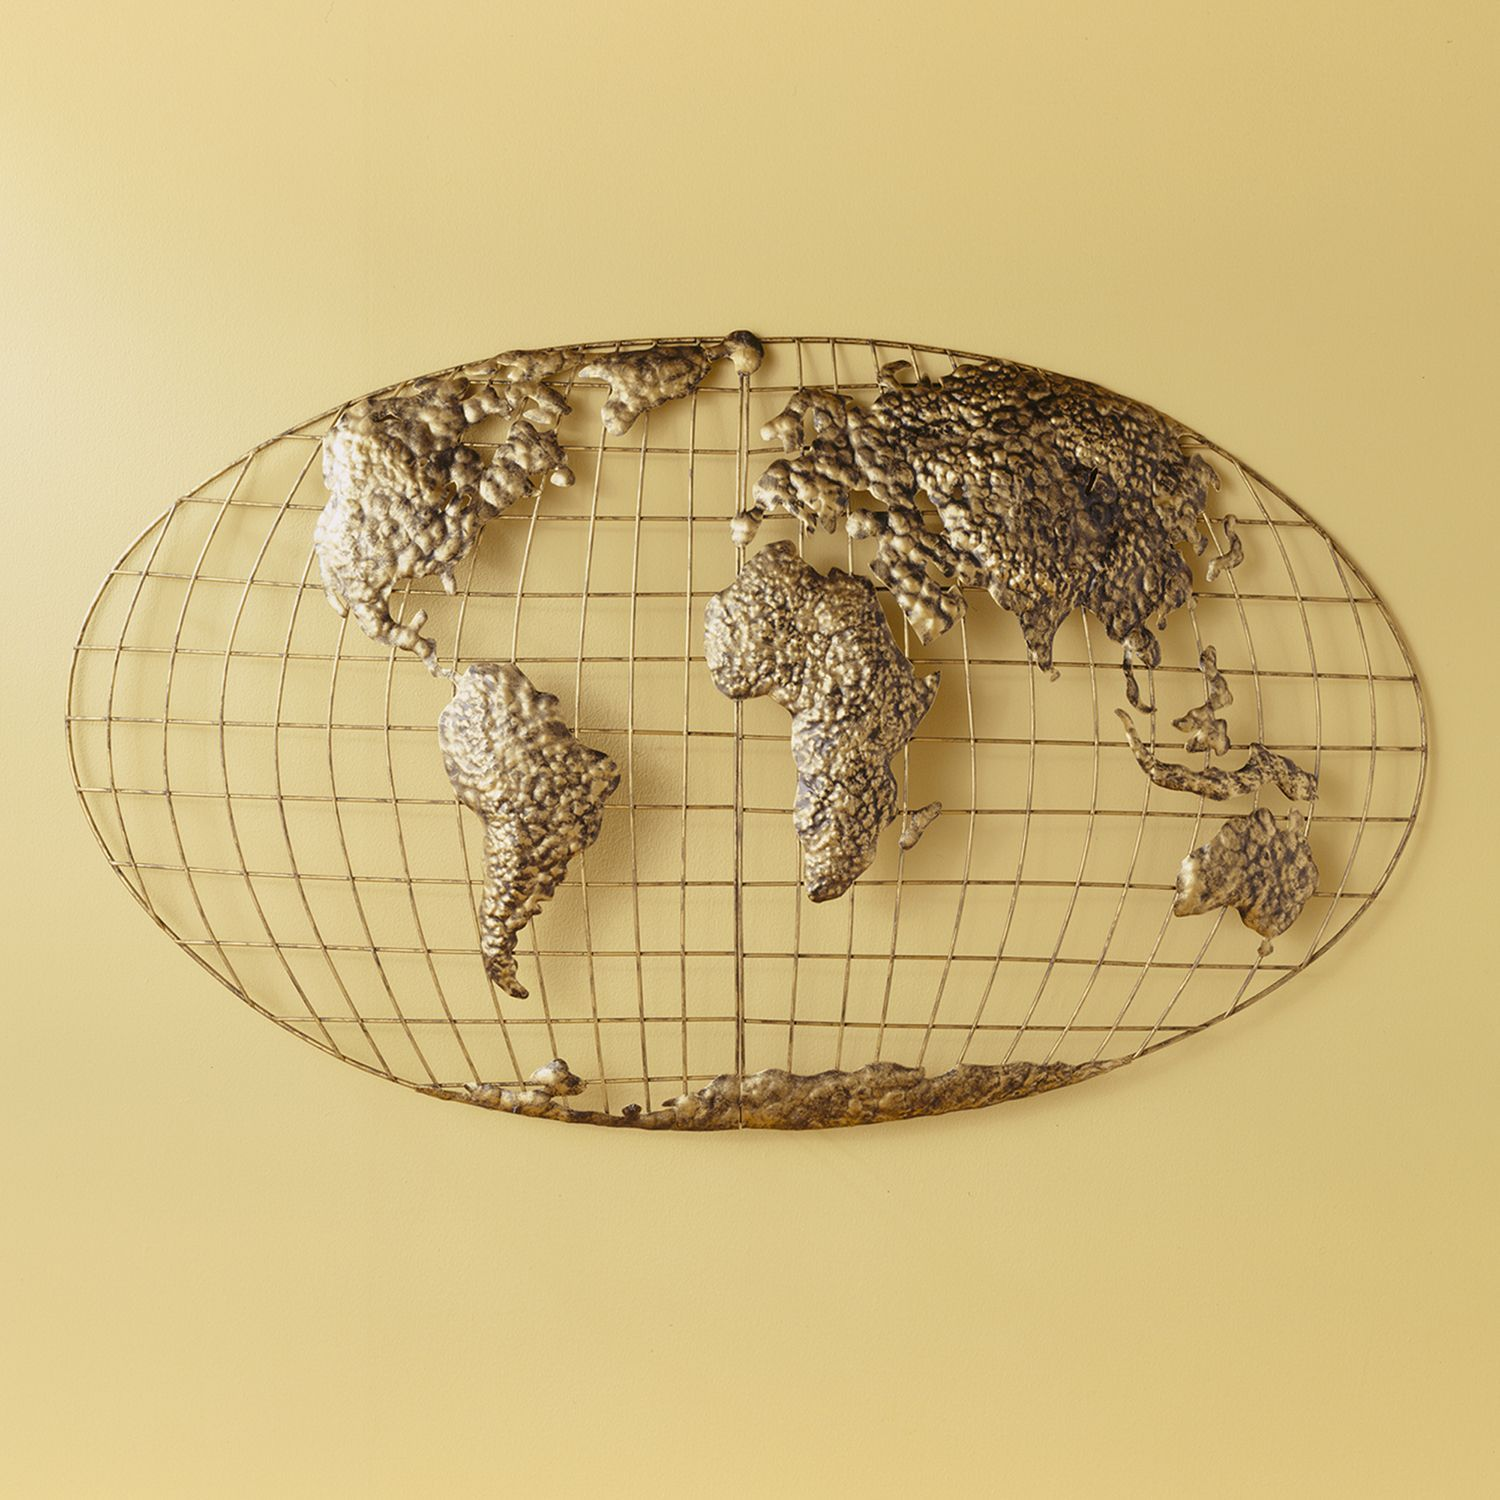 Iron World Map Wall Art | Iron, Walls and Wall decor